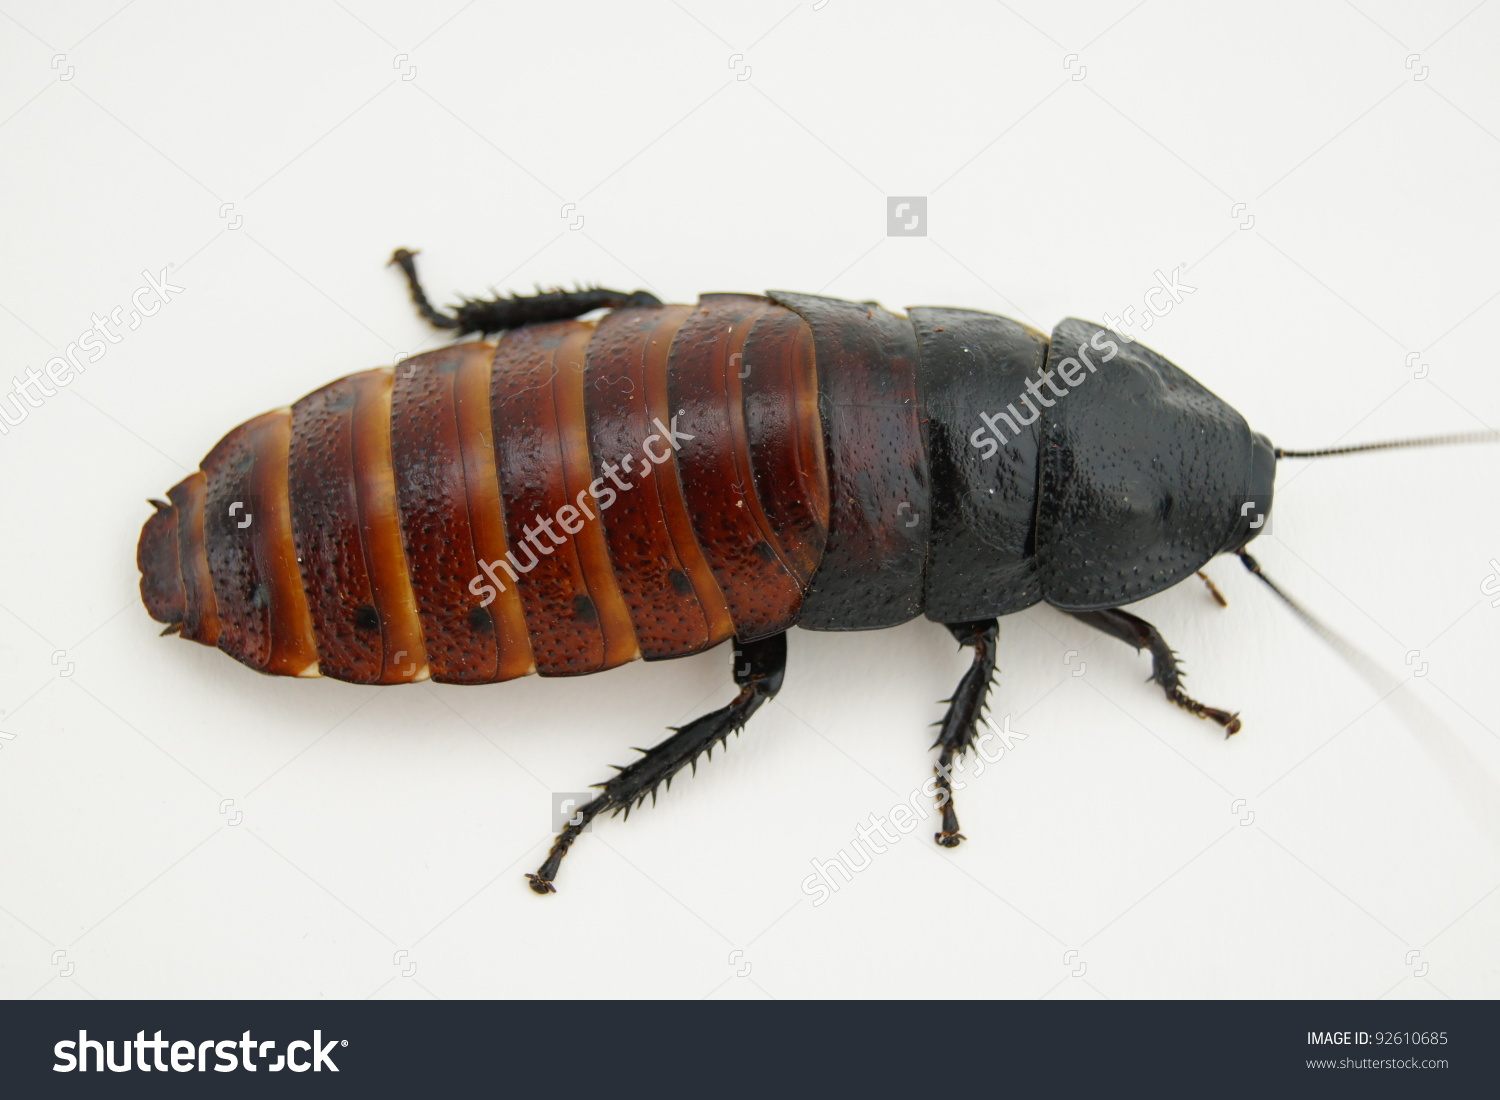 Madagascar Hissing Cockroach Stock Photo 92610685.